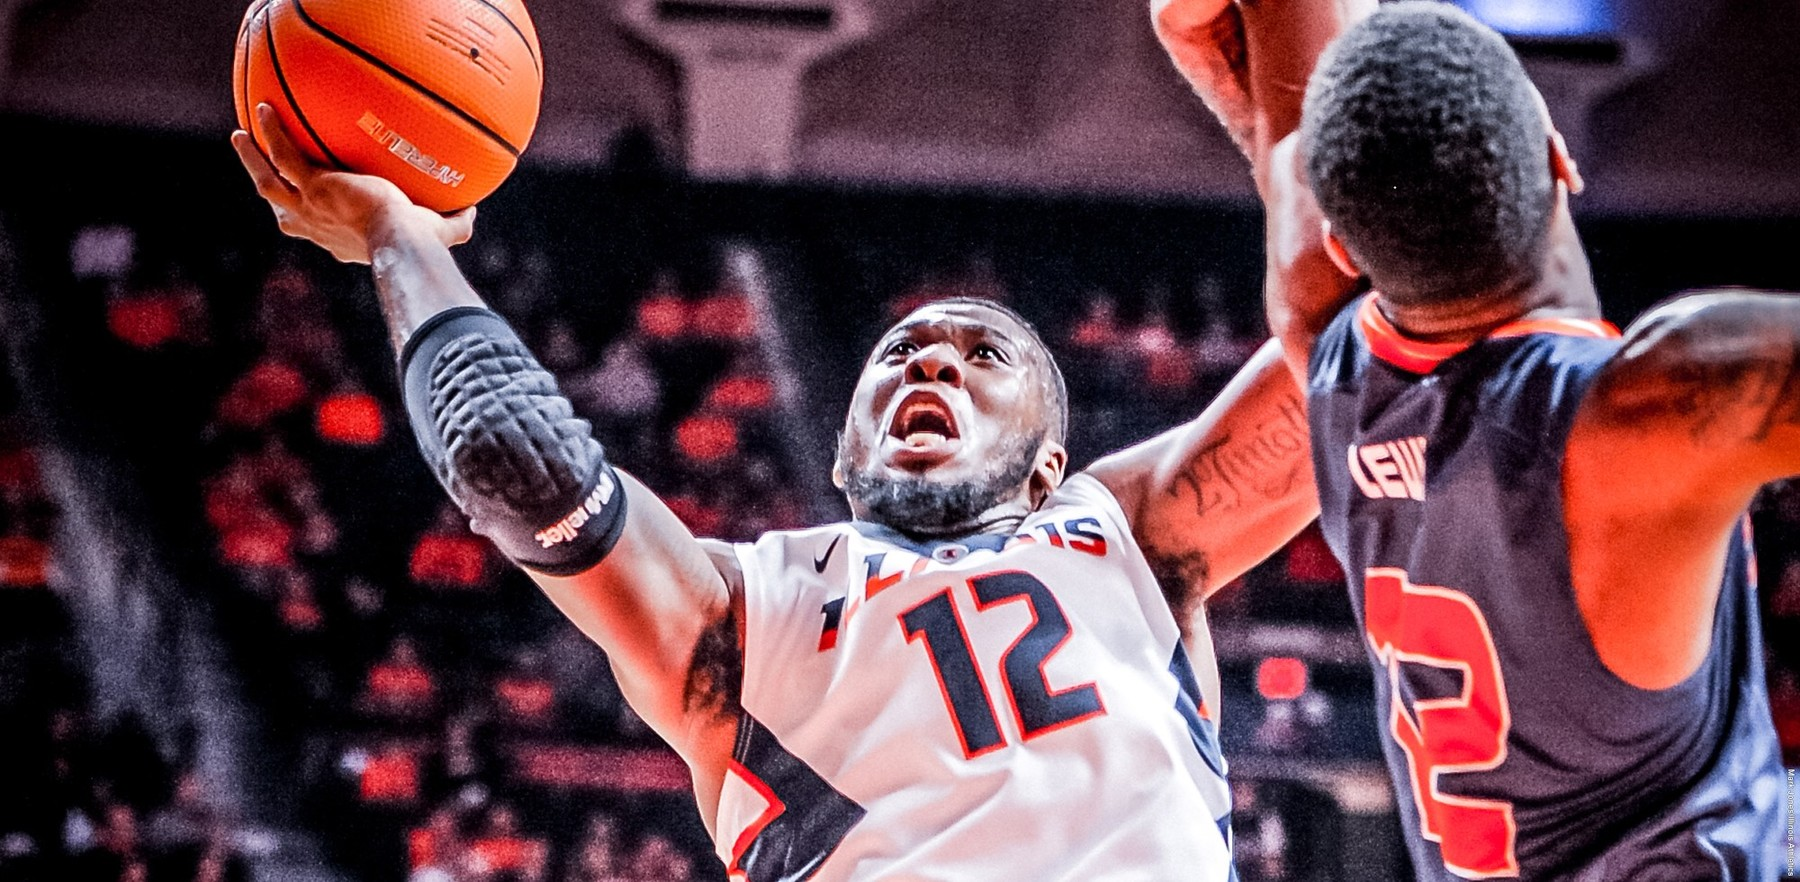 Leron Black goes in for a layup against a UT Martin defender